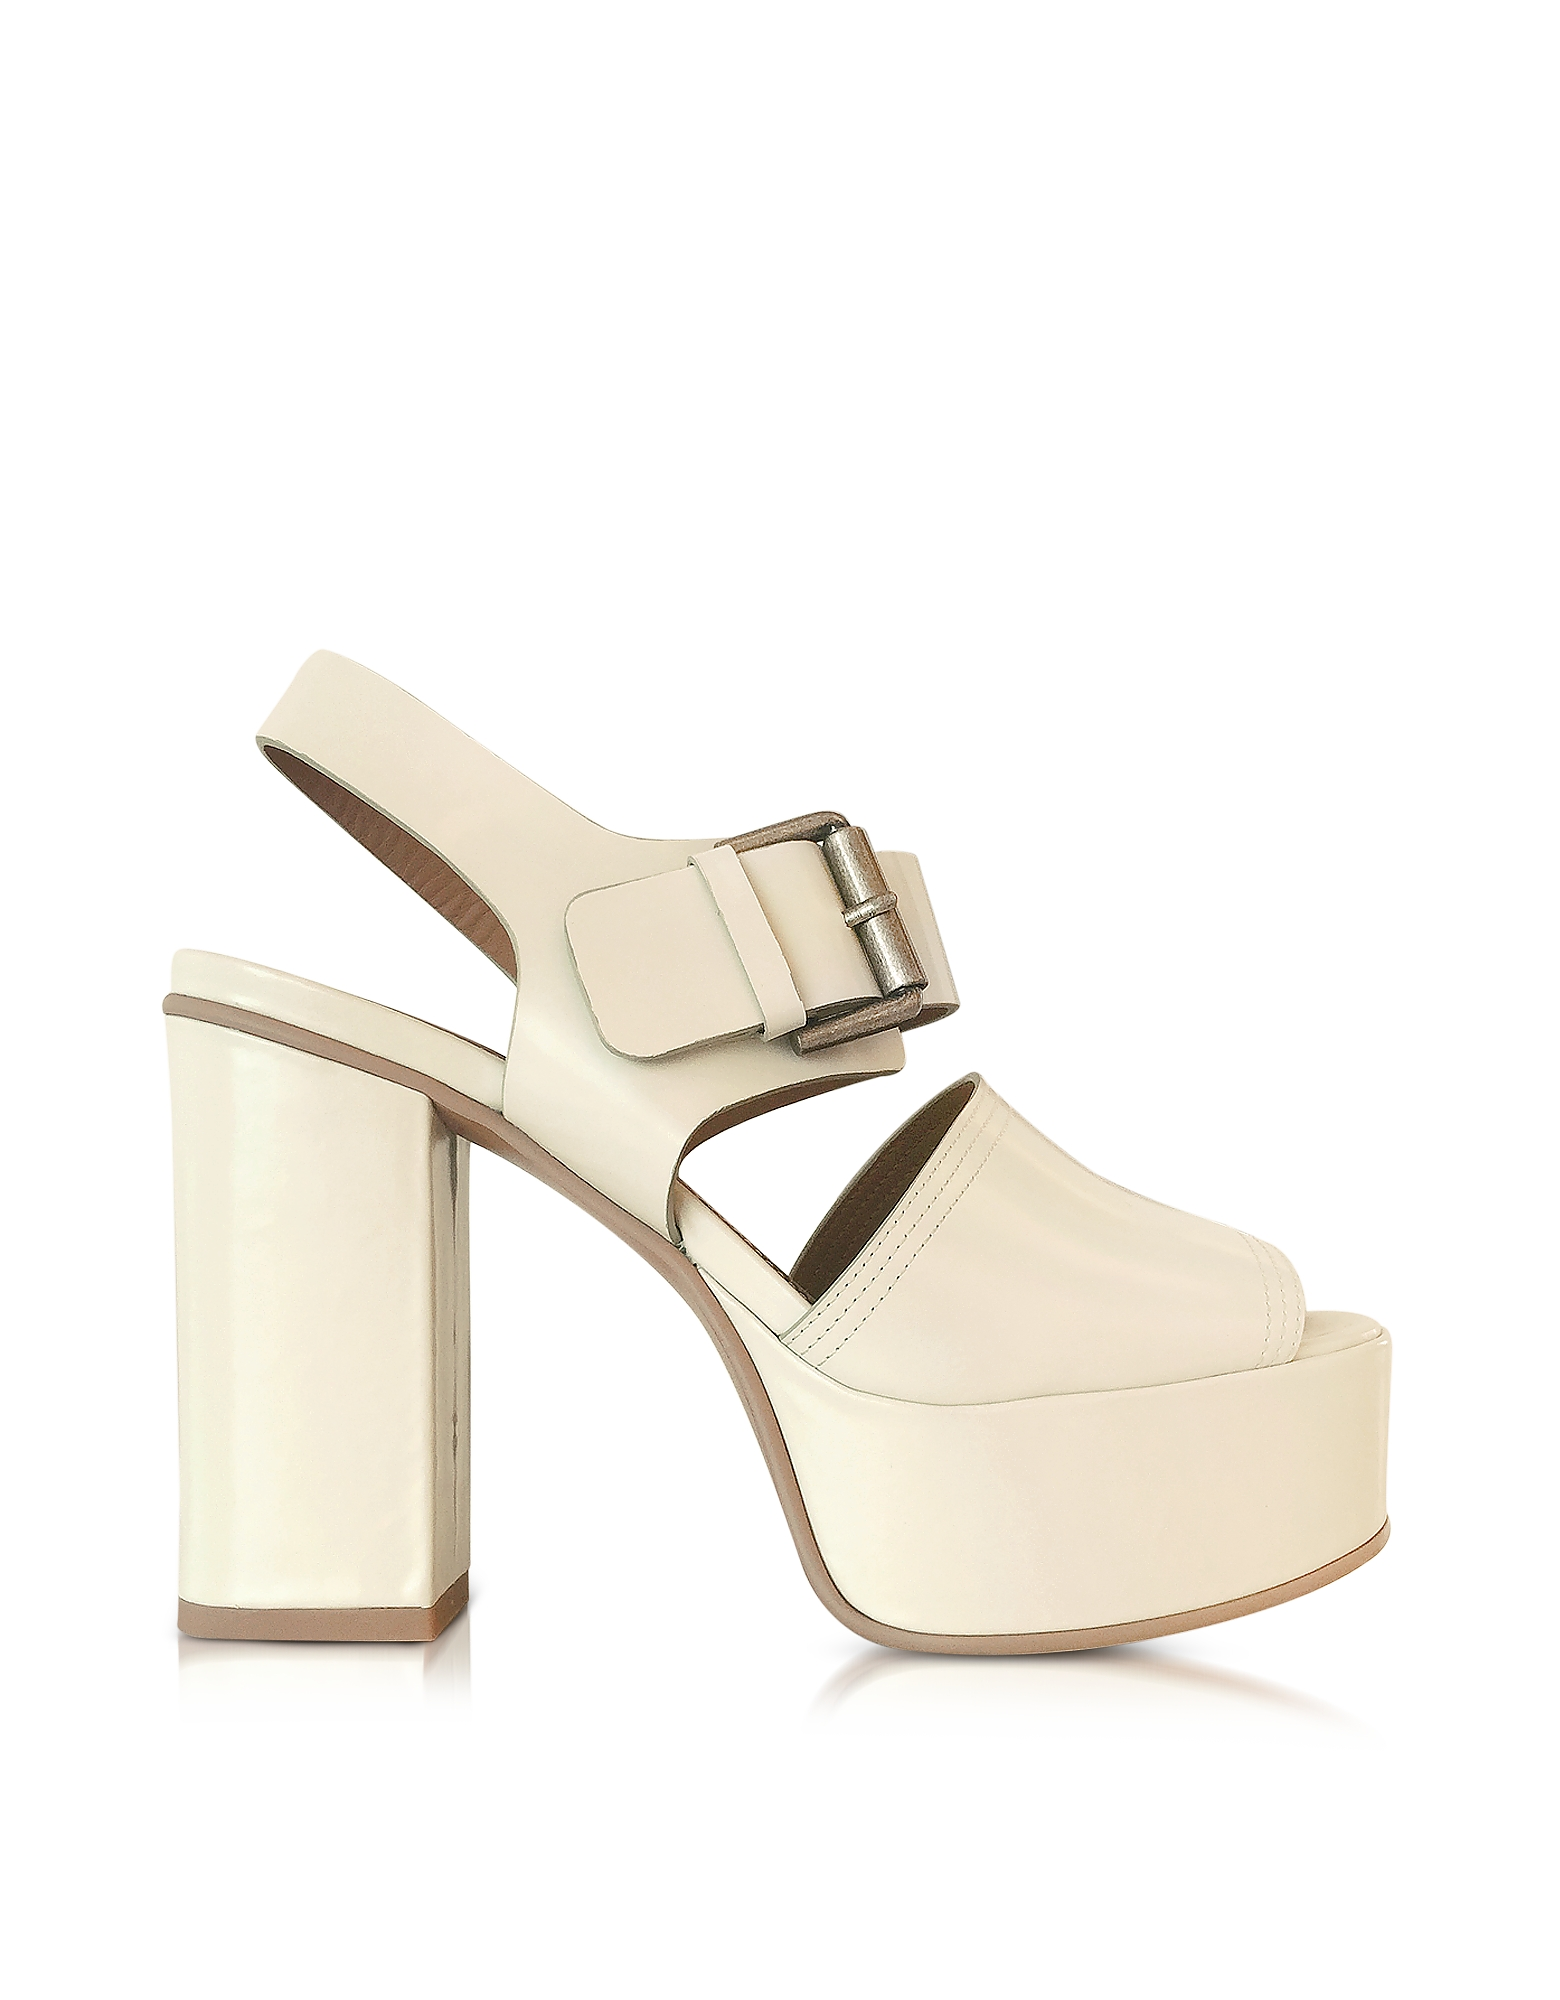 See by Chloé Shoes, Opale Leather Platform Sandal